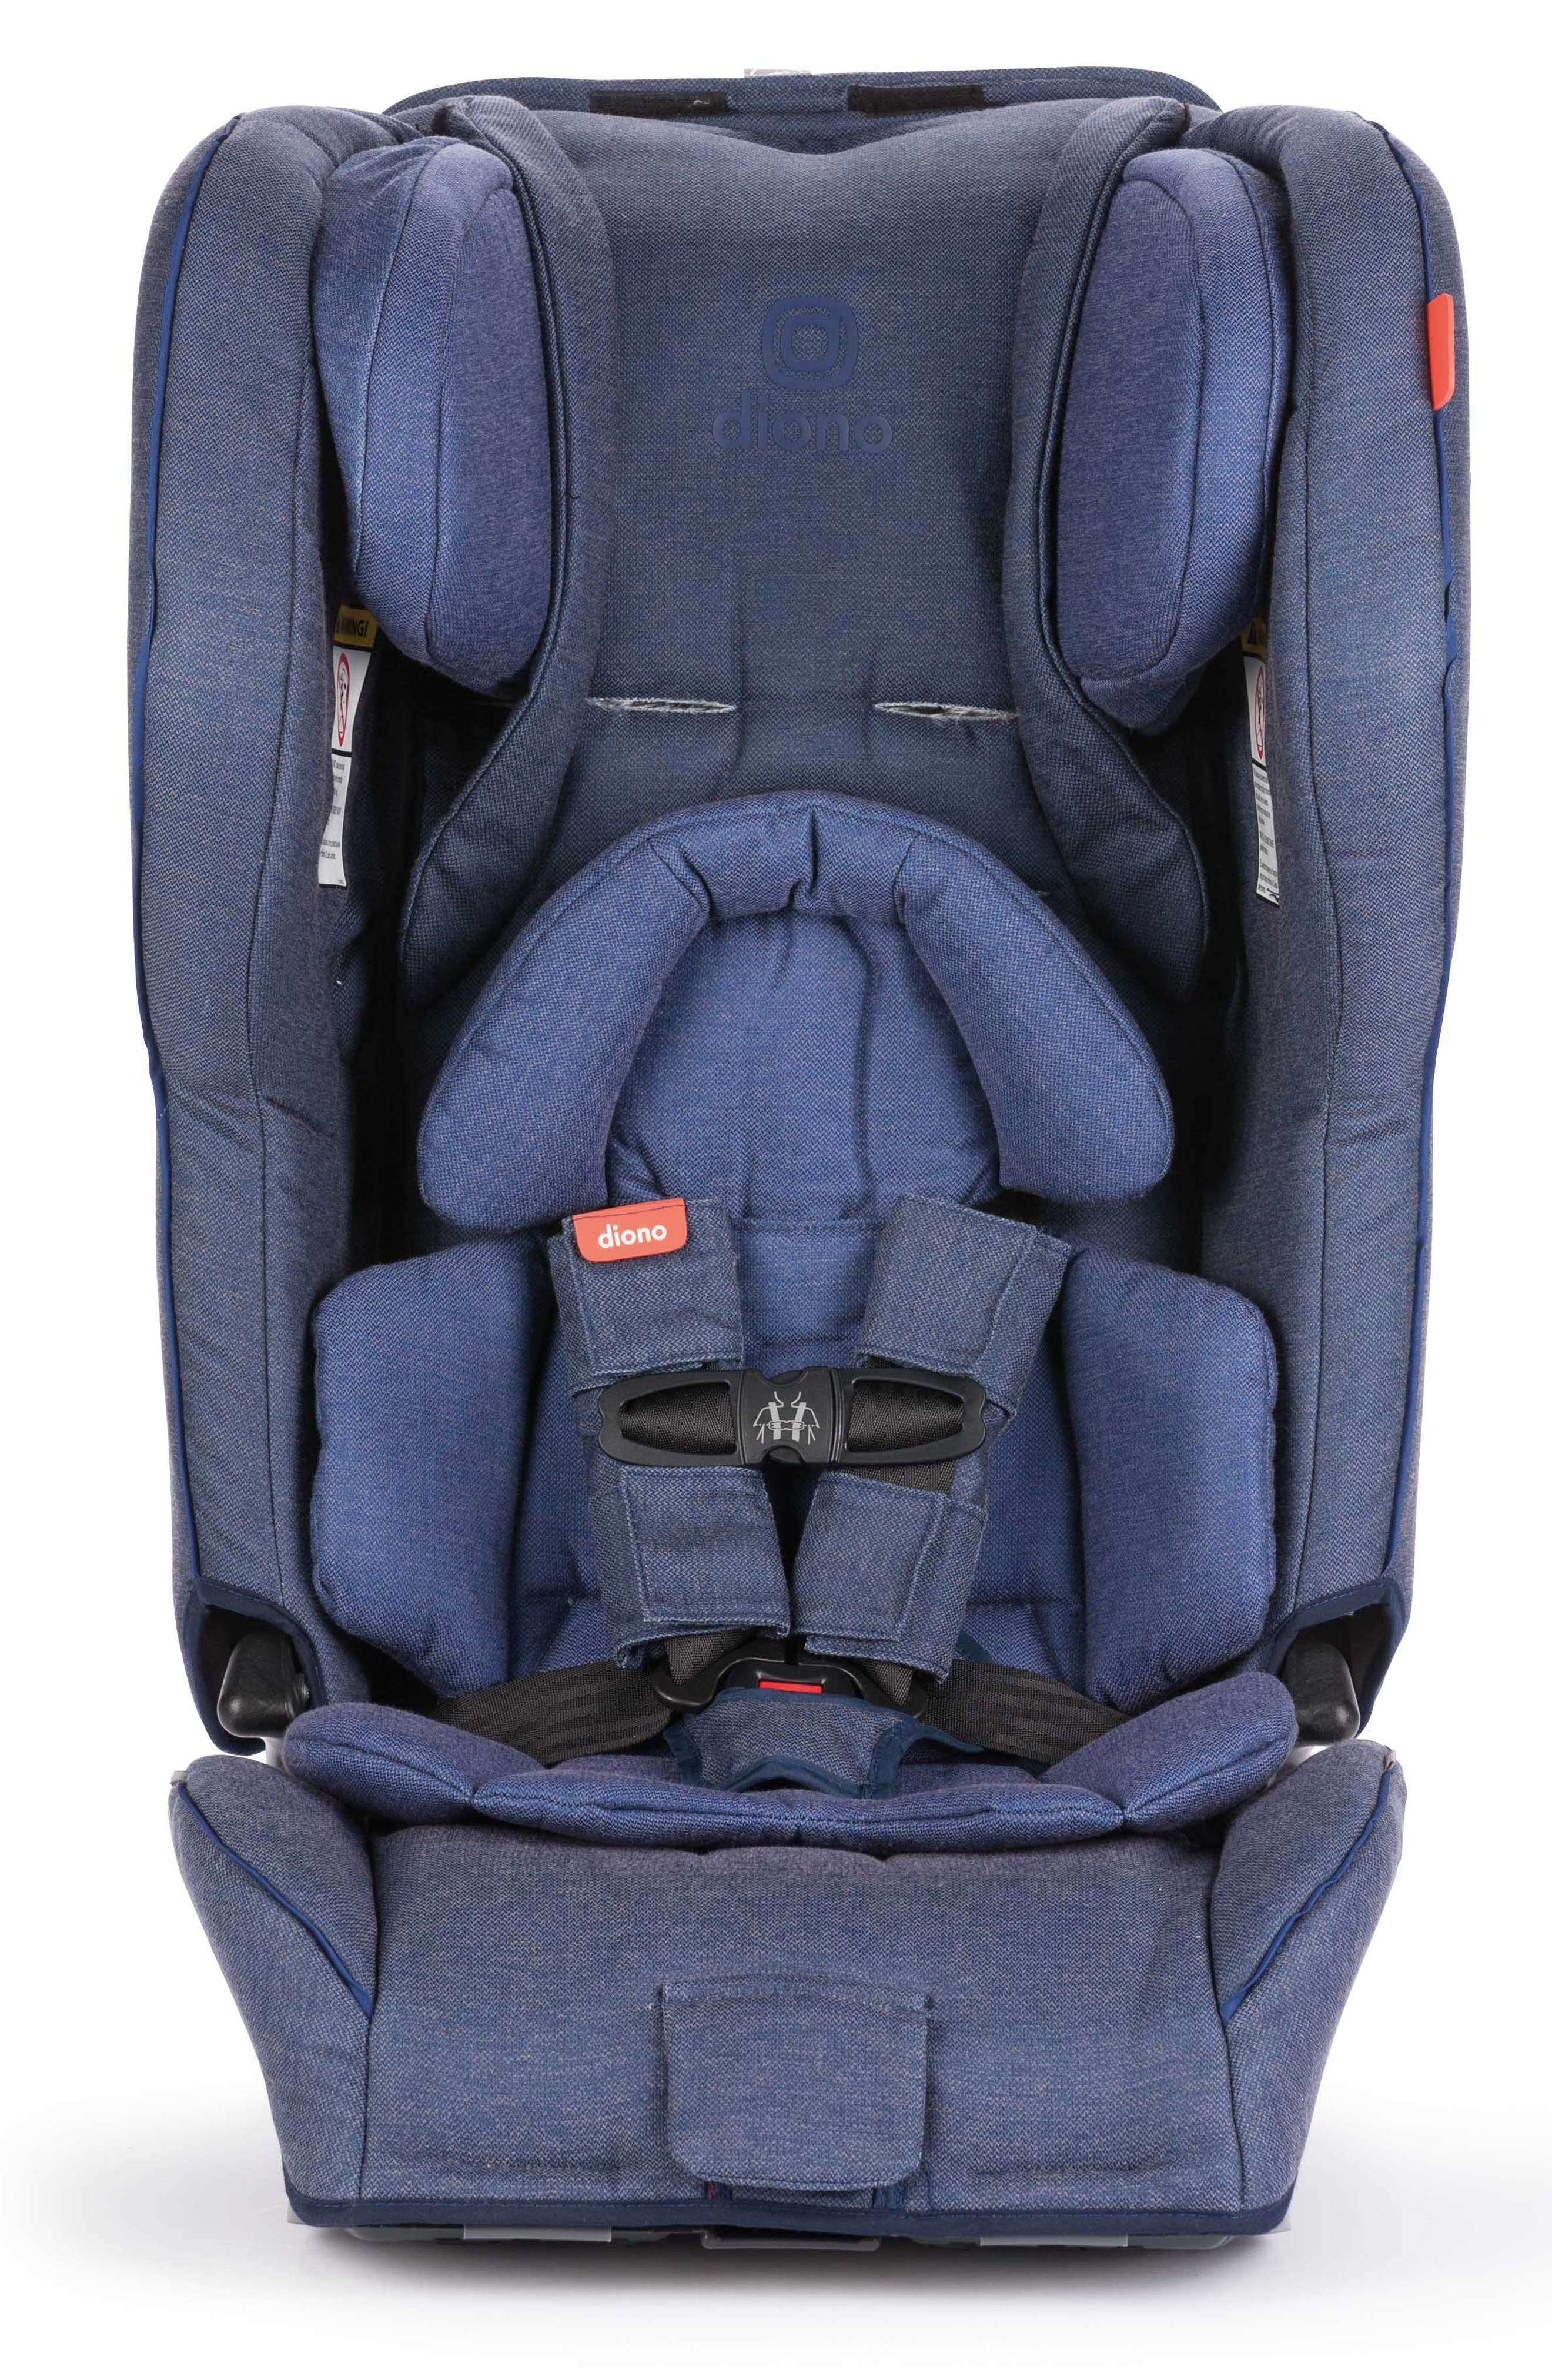 Infant Diono Rainier 2 Axt Car Seat Size One Size  Blue